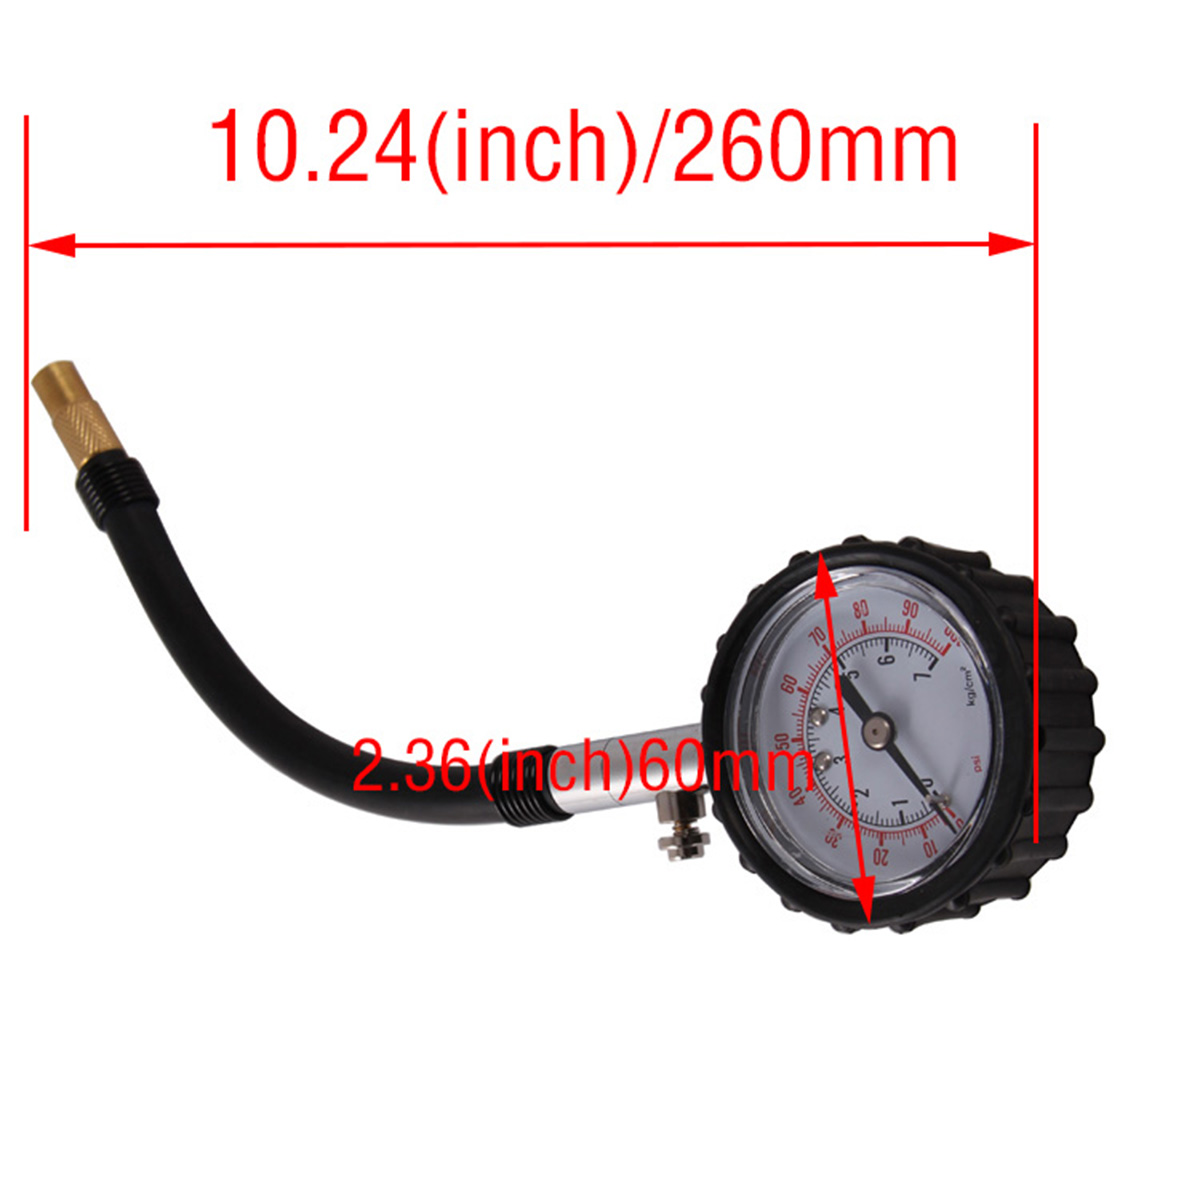 car truck motorcycle tyre tire air pressure guage tester 0 100 psi dial meter ebay. Black Bedroom Furniture Sets. Home Design Ideas